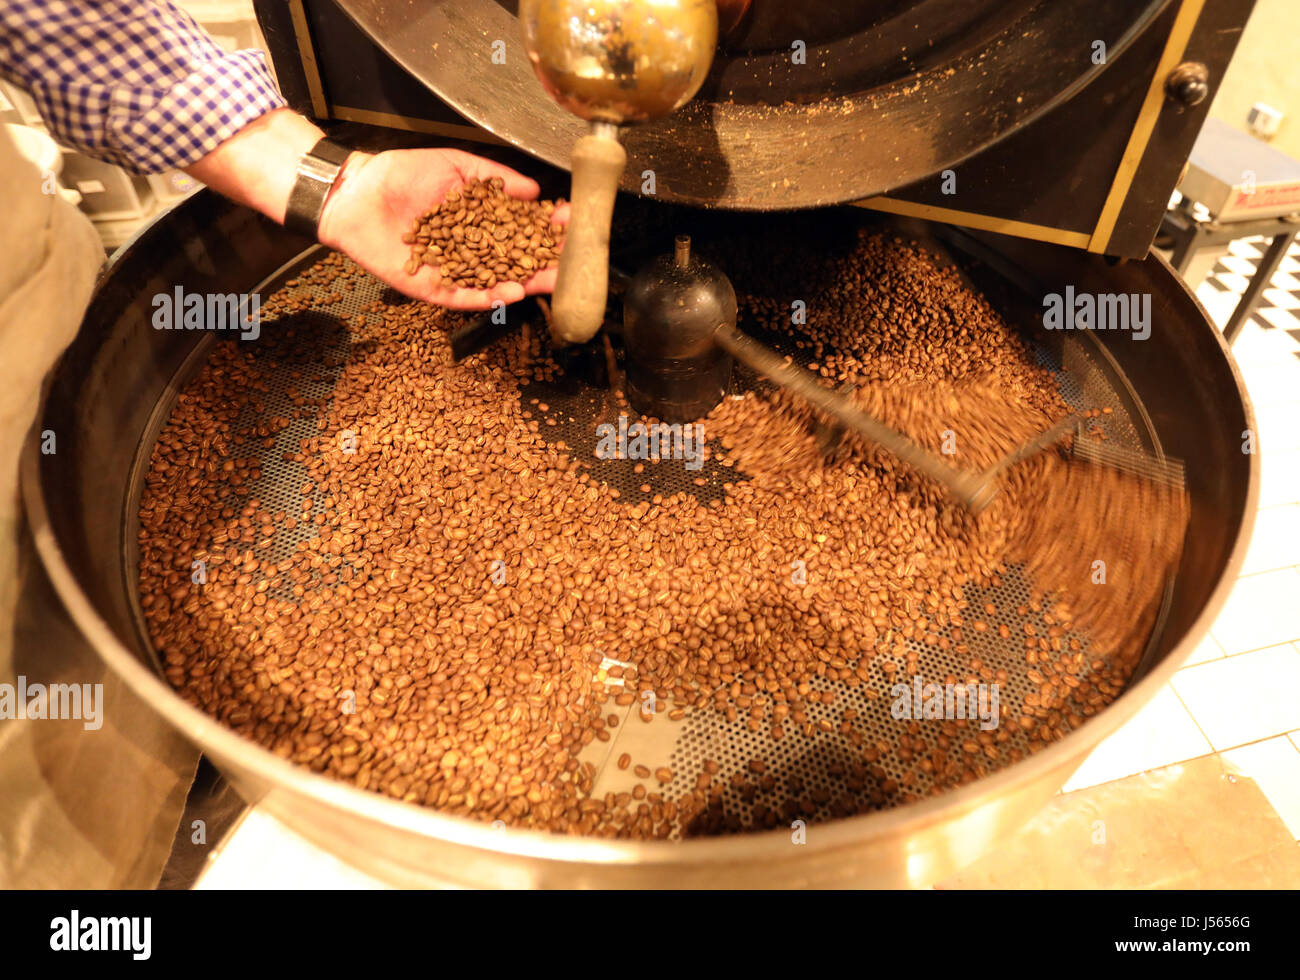 Roevershagen, Germany. 16th May, 2017. Rainer Martens shows how Arabica coffee is roasted in the coffee manufactory - Stock Image